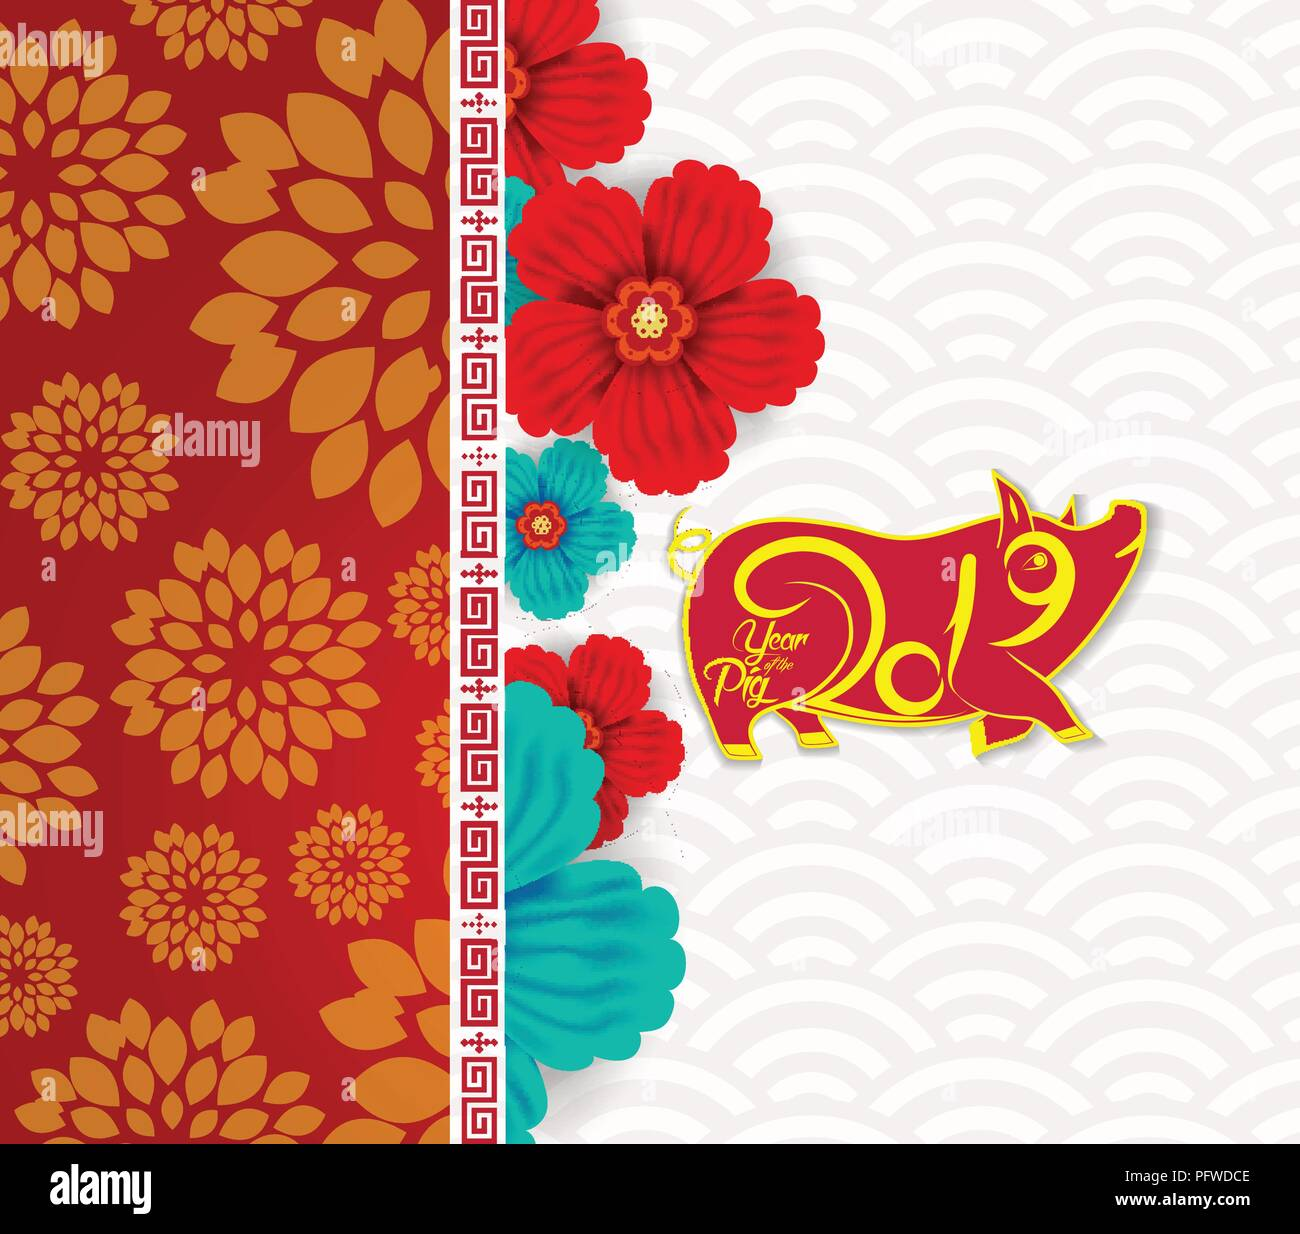 Happy Chinese New Year Zodiac Sign With Gold Paper Cut Art And Craft Style On Color